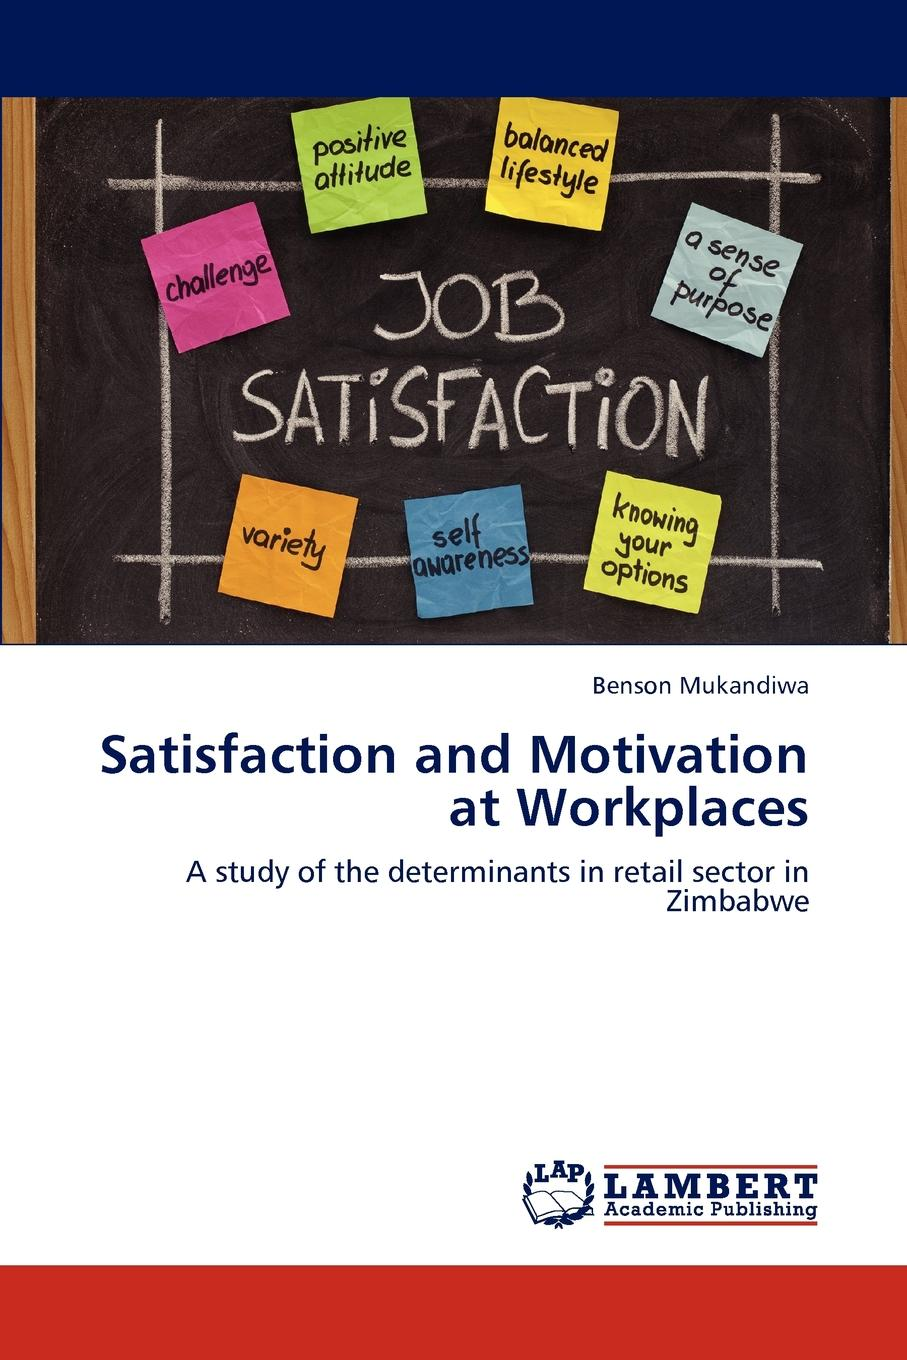 Satisfaction and Motivation at Workplaces